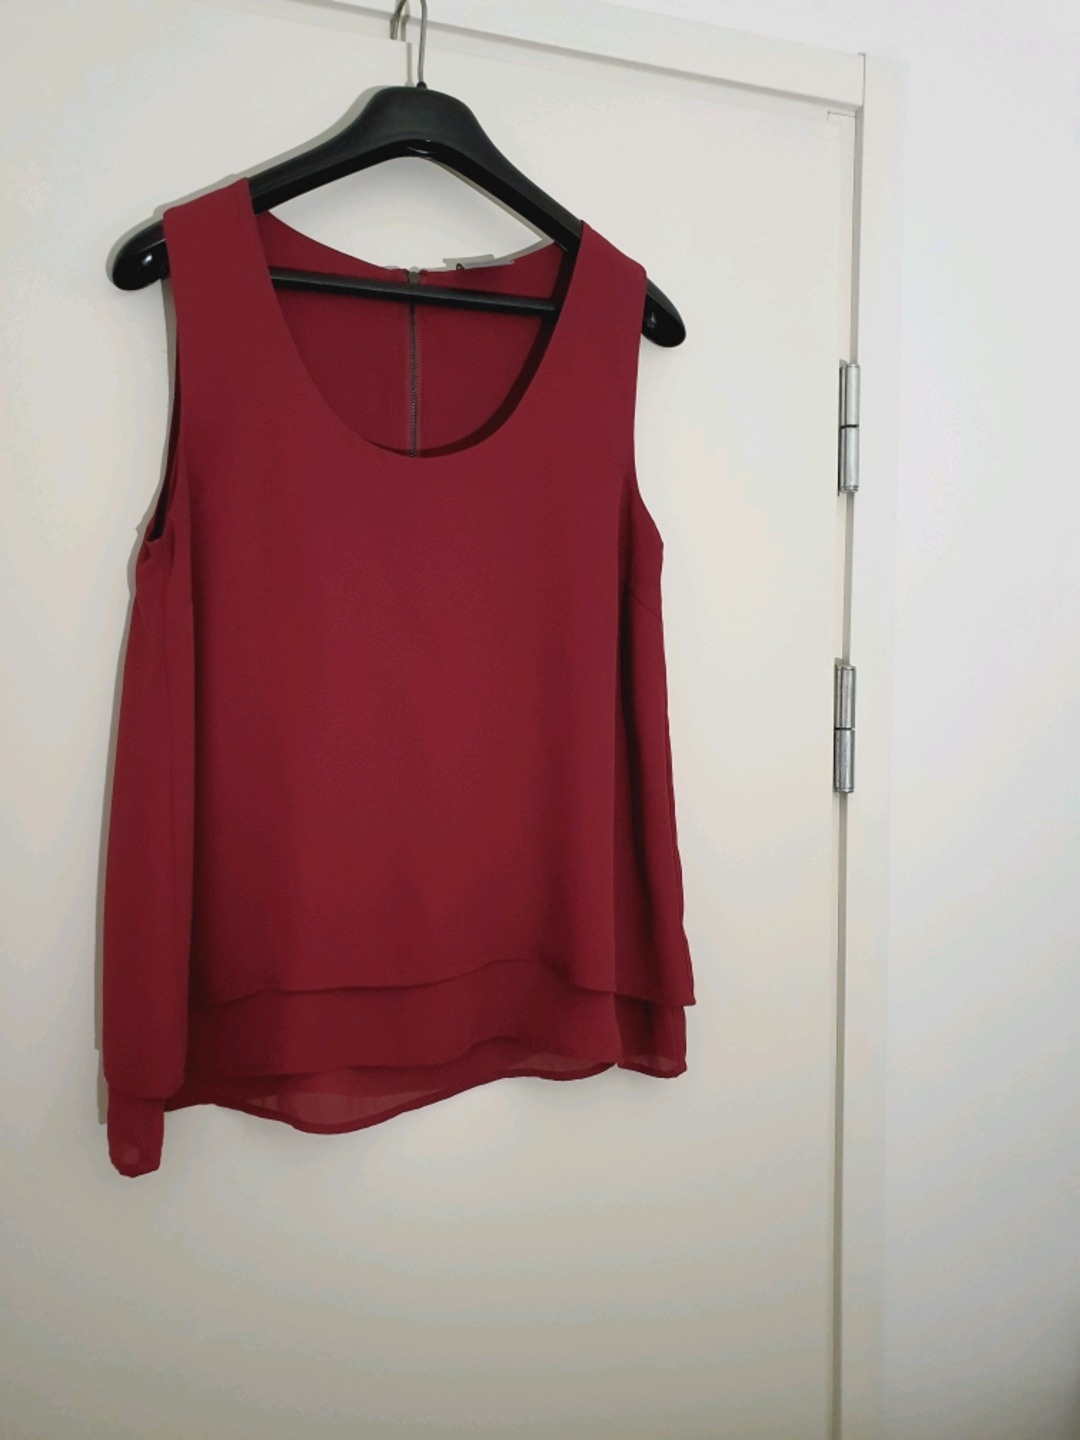 Damers toppe og t-shirts - VERO MODA photo 4